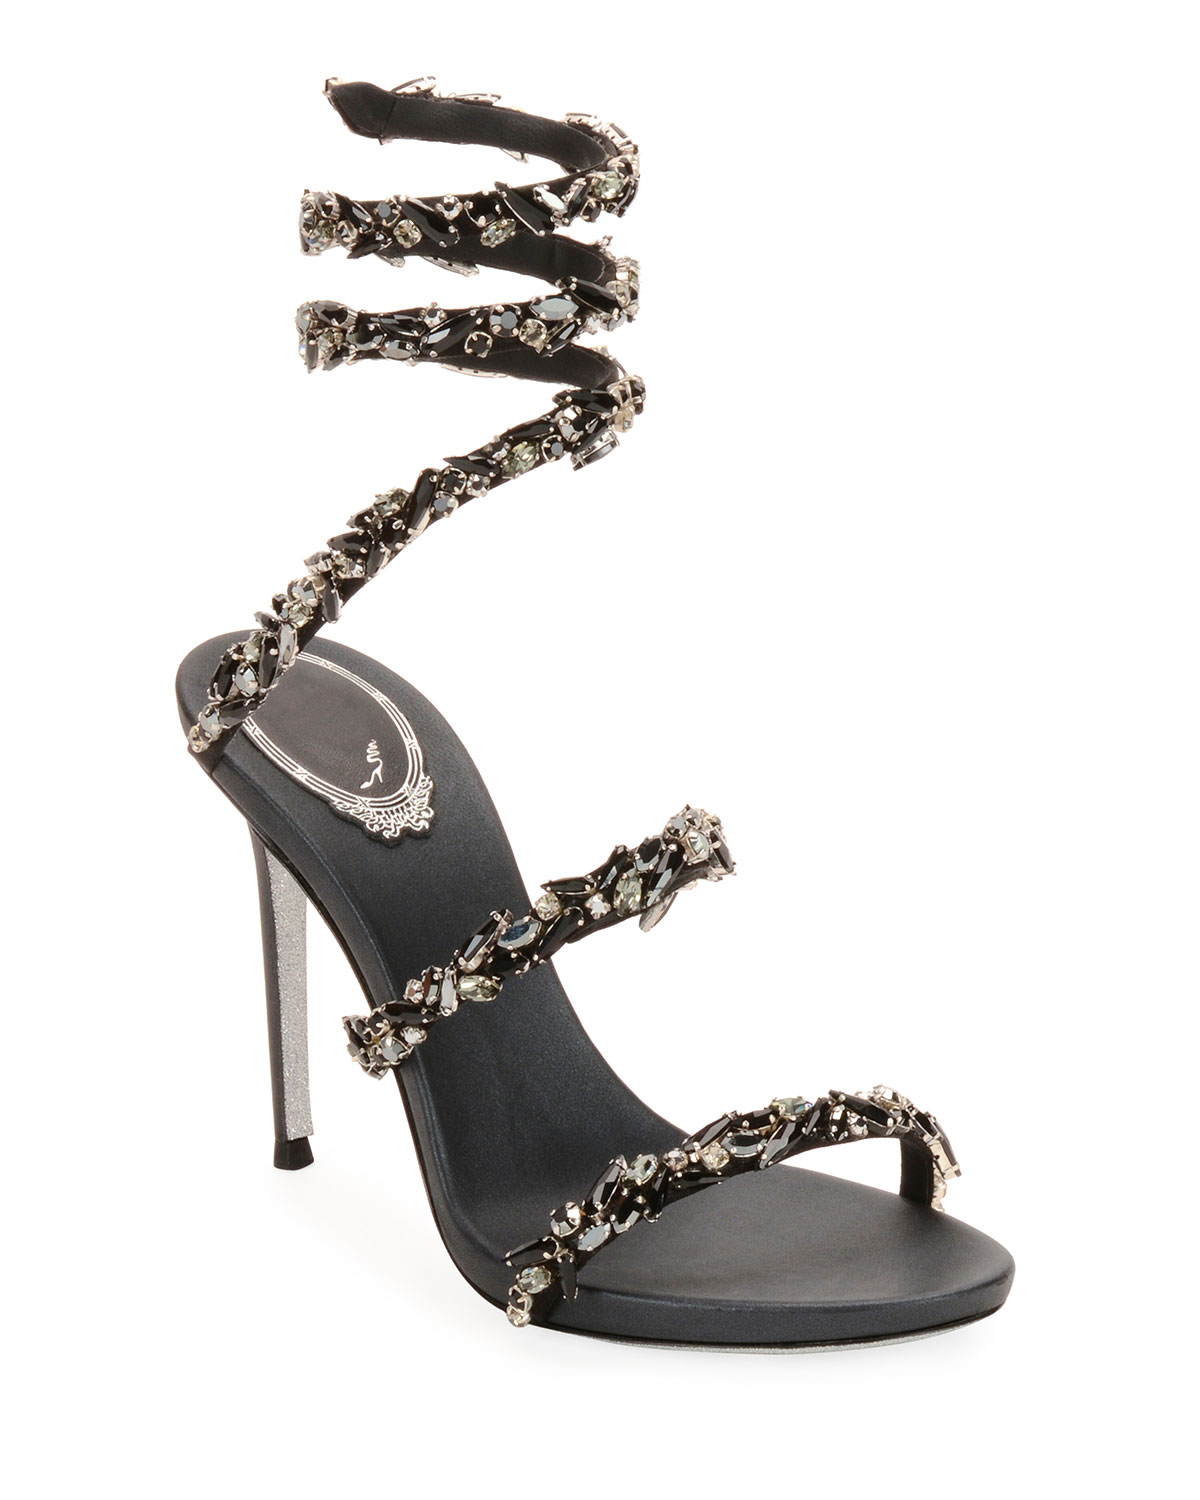 49f38cf78d1 Rene Caovilla Snake-Coil Sandal with Crystal Detail